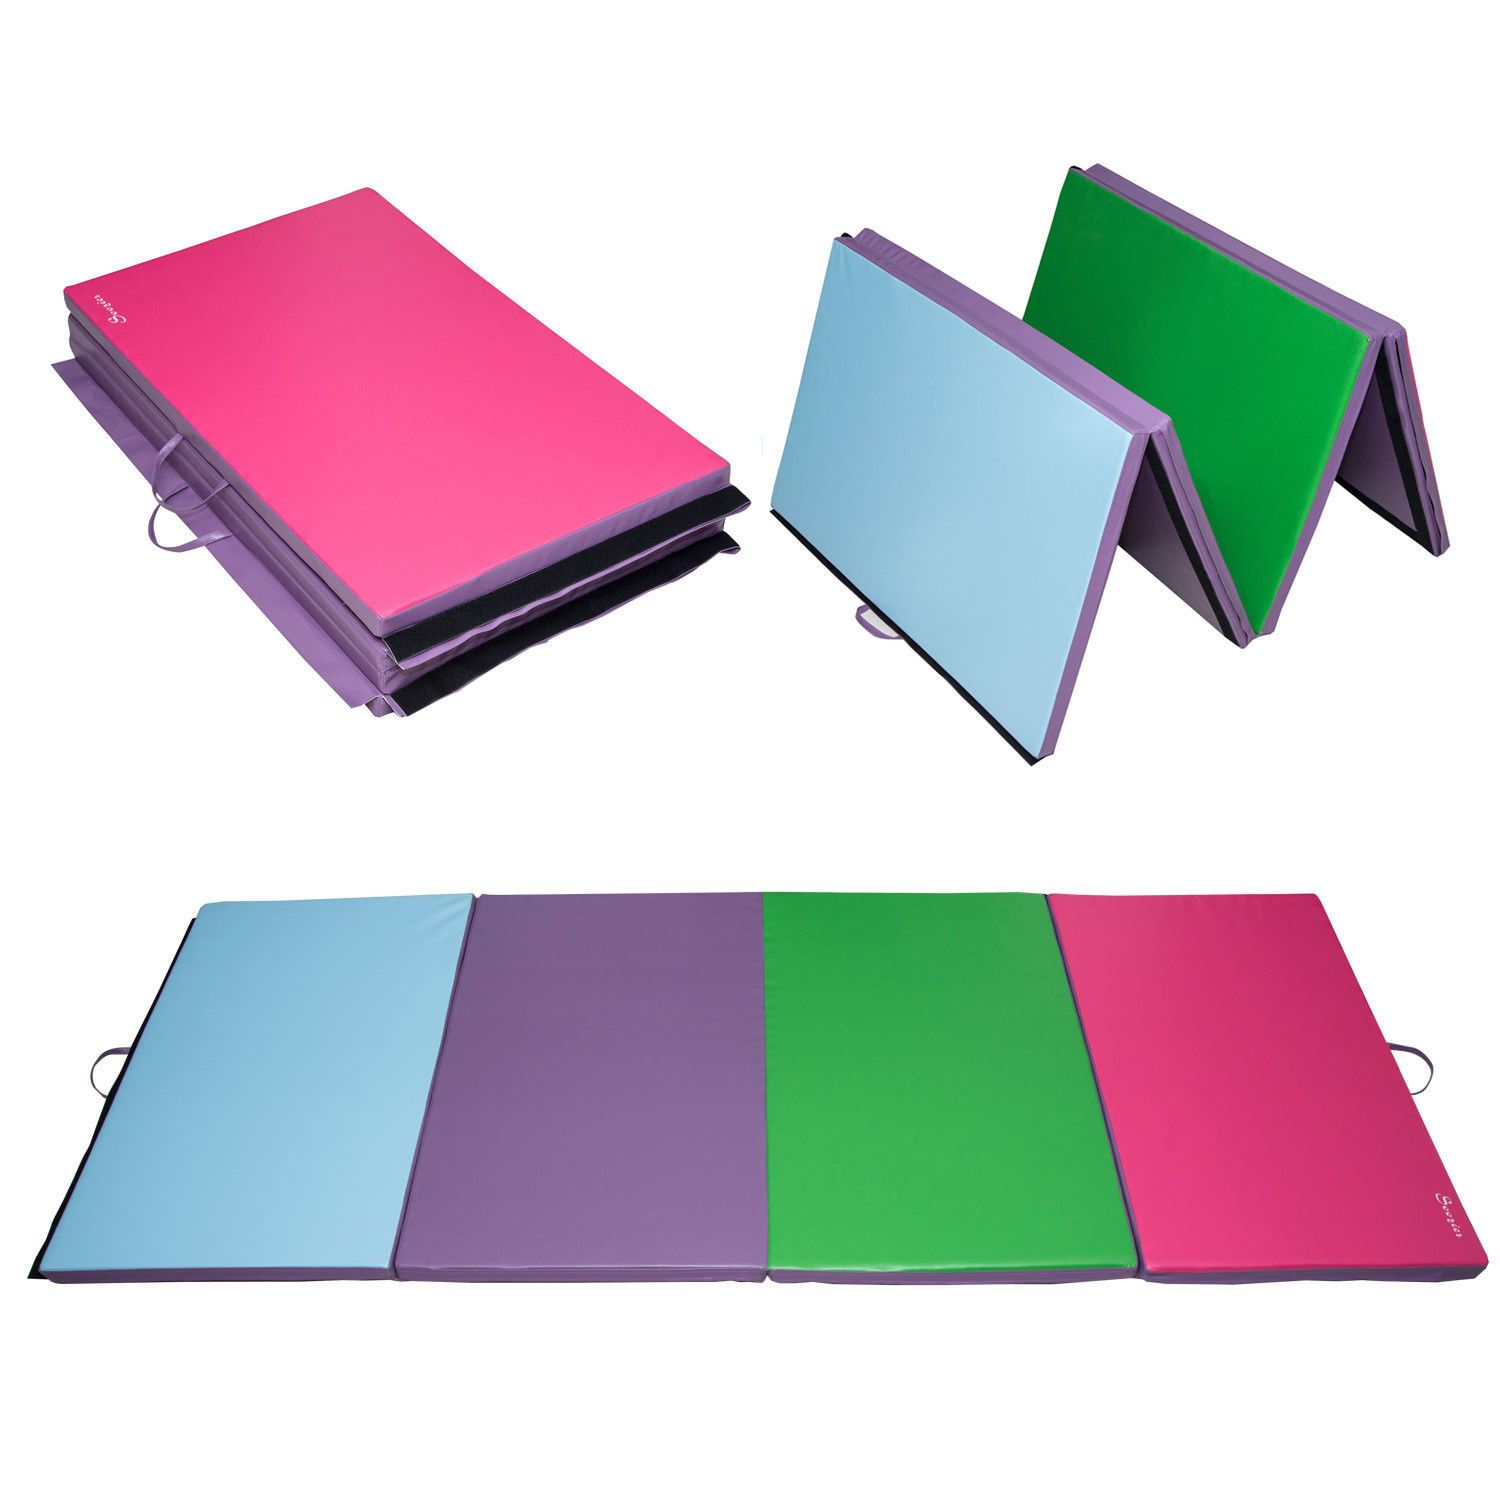 gymnastics tumbling athletic mats mat folding ebay picture used arts p of z martial